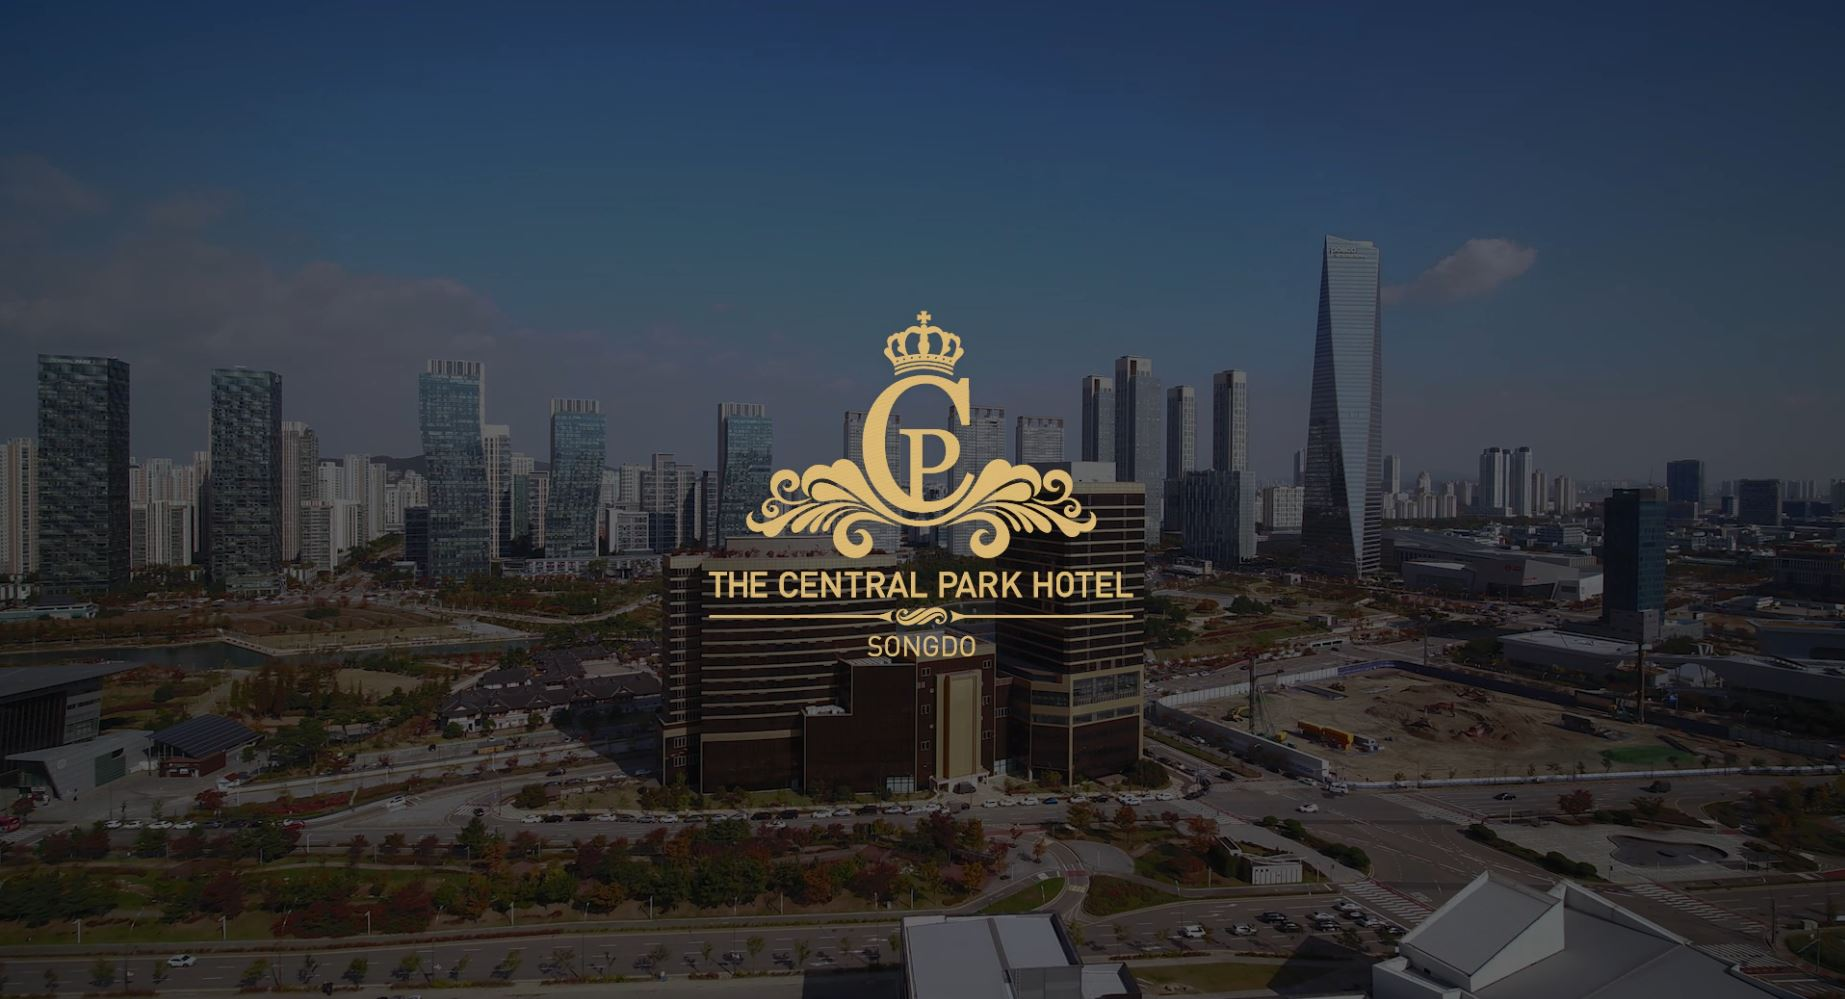 The Central Park Hotel Songdo_MASTER_English의 썸네일